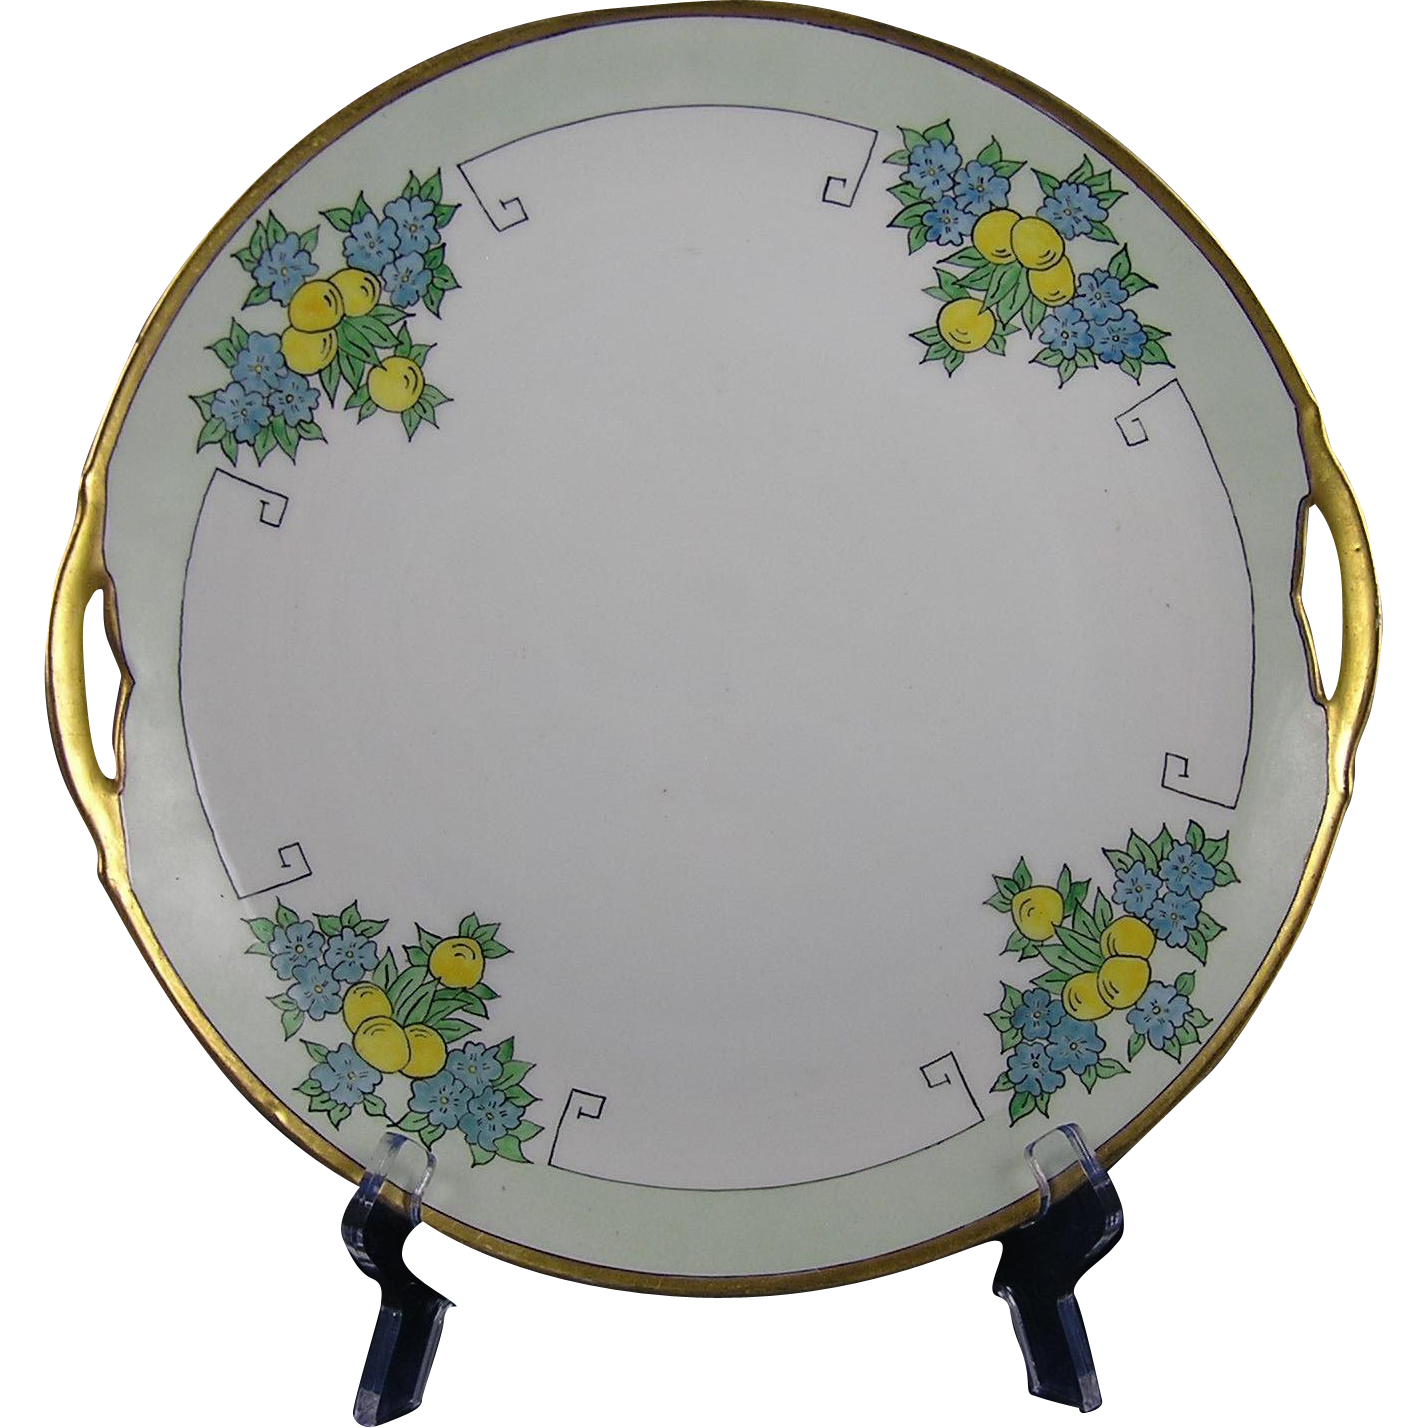 "Krister Porcelain Manufactory (KPM) Silesia Arts & Crafts Fruit Motif Handled Plate (Signed ""Irene Bozell, Tipton, Ind.""/c.1904-1927)"